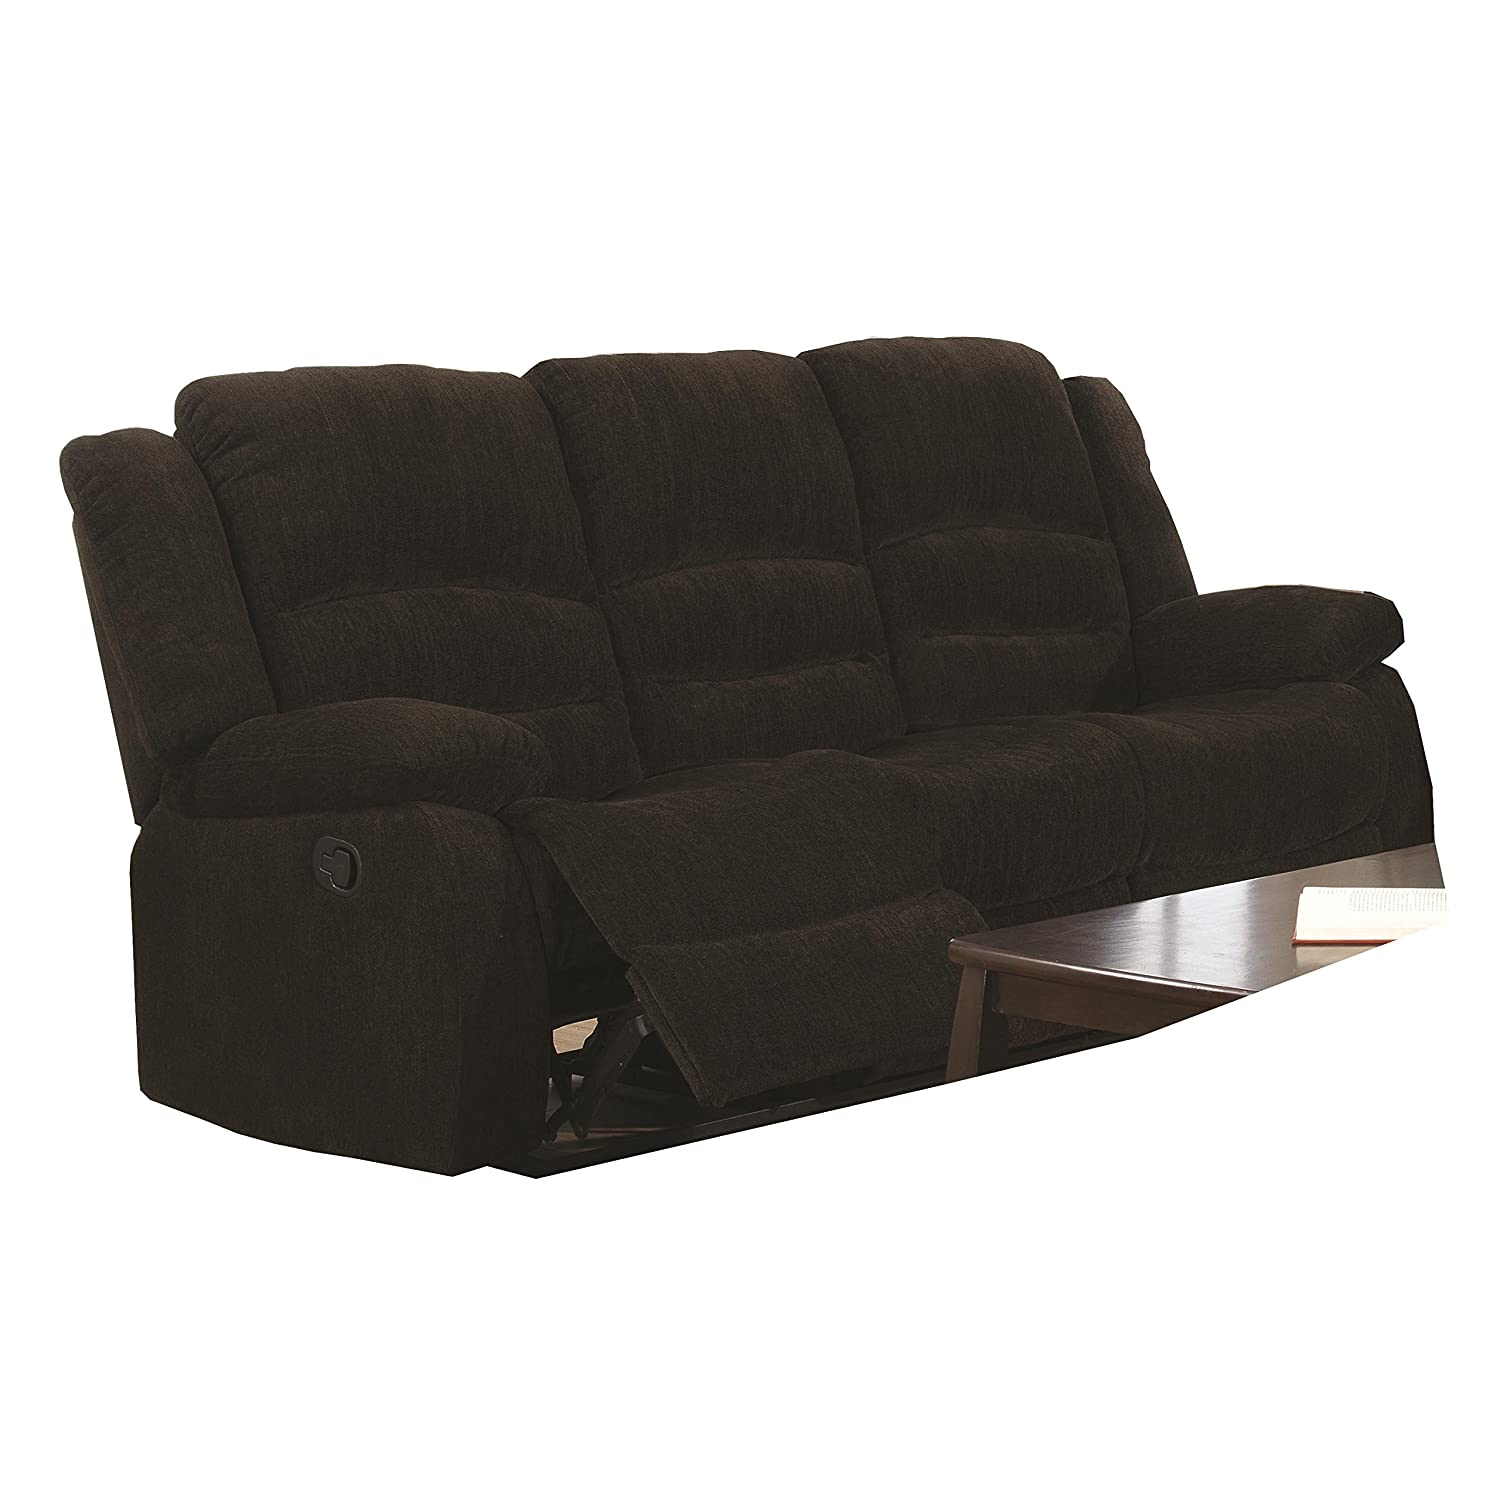 Amazon.com Coaster Home Furnishings Casual Motion Sofa Dark Brown Kitchen u0026 Dining  sc 1 st  Amazon.com & Amazon.com: Coaster Home Furnishings Casual Motion Sofa Dark ... islam-shia.org